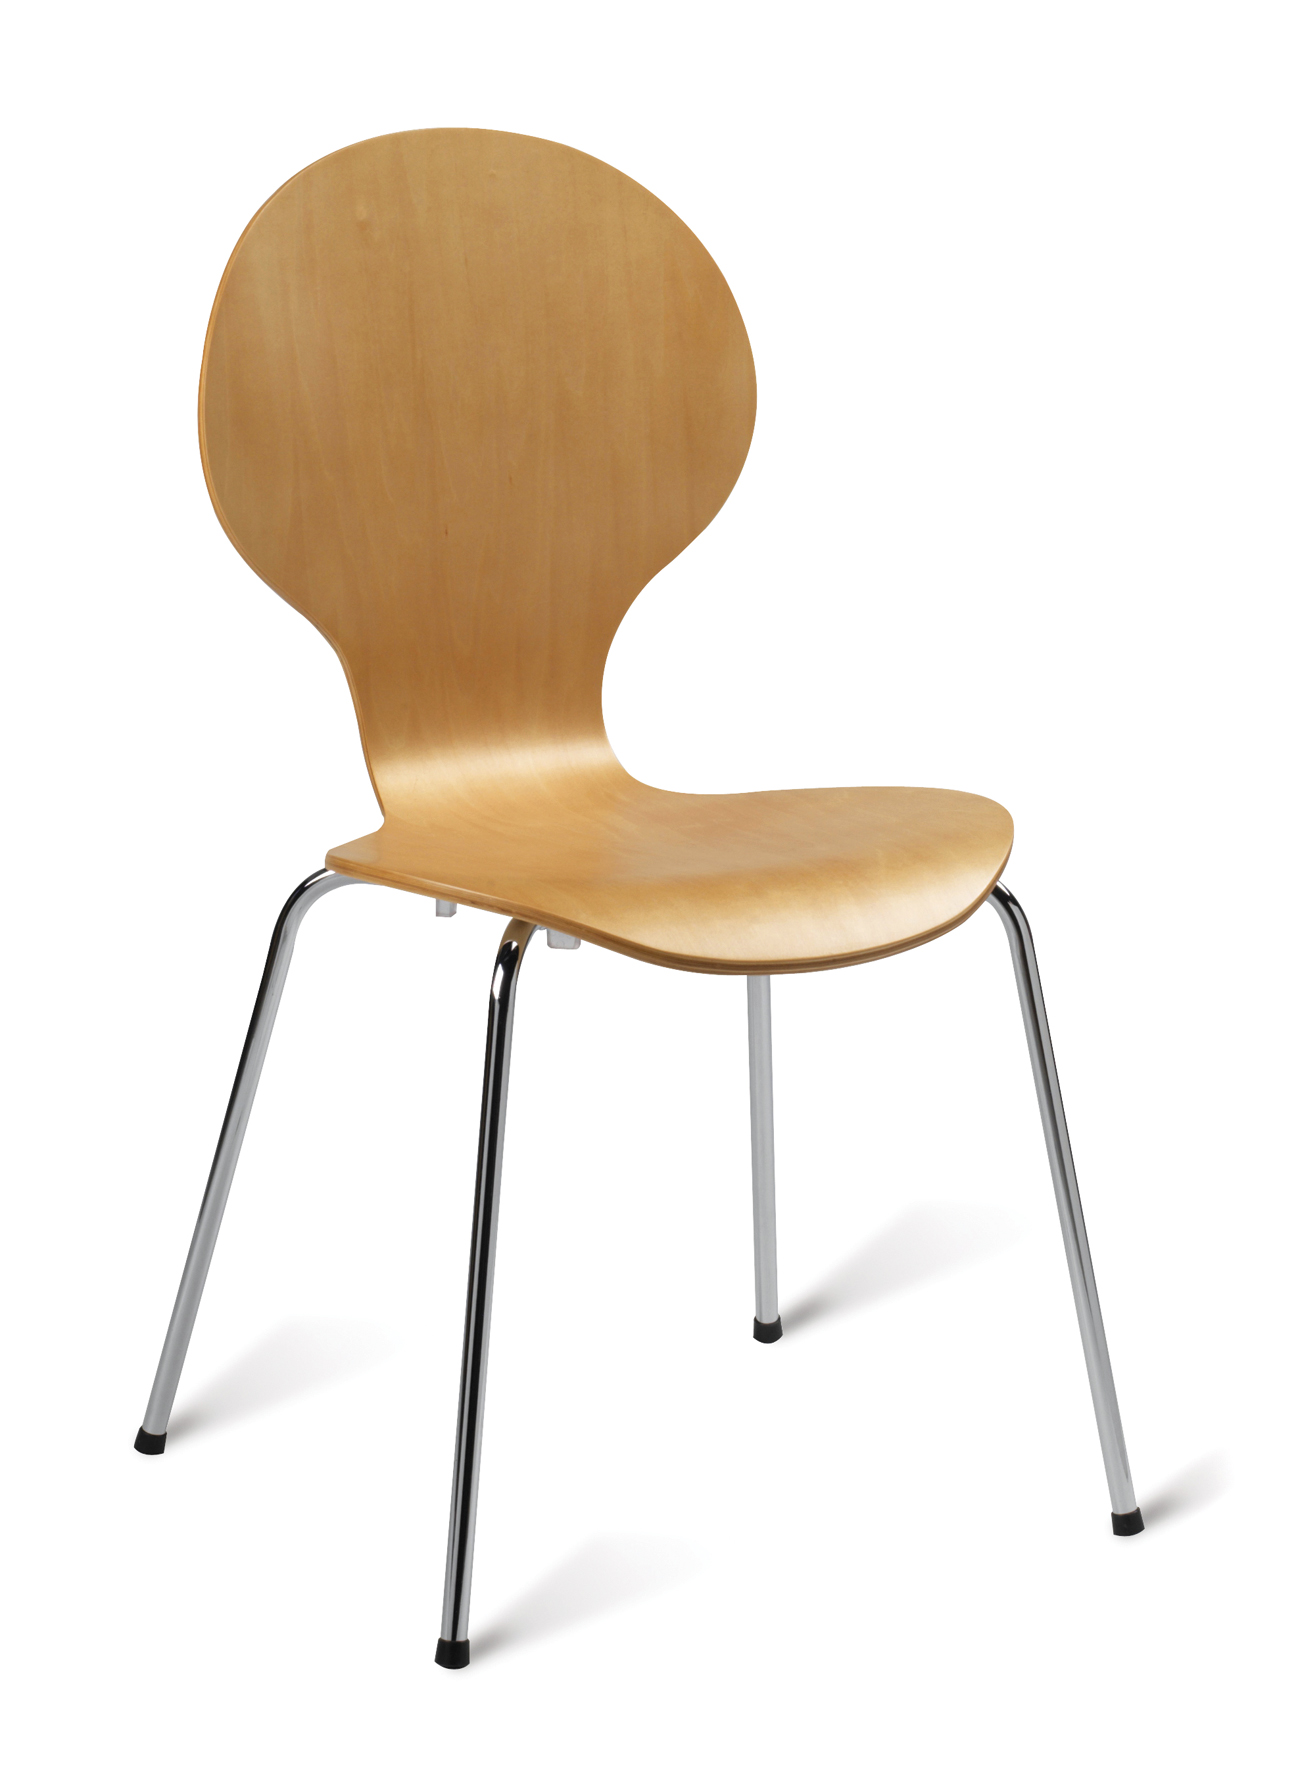 Corsica contemporary cafe chair simply tables chairs for Contemporary seating chairs